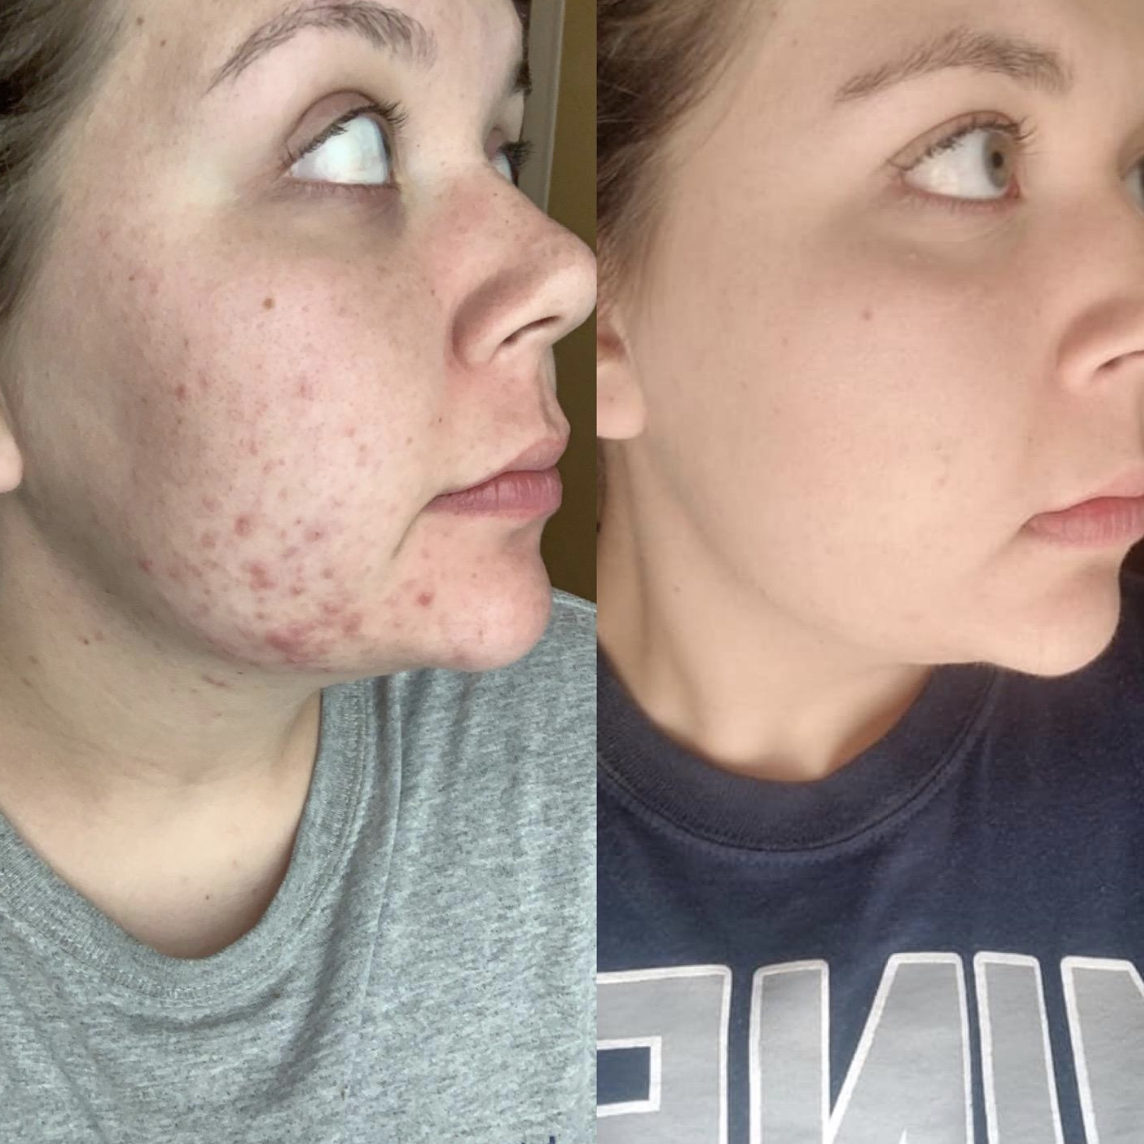 Before and after image of reviewer with cystic acne and without